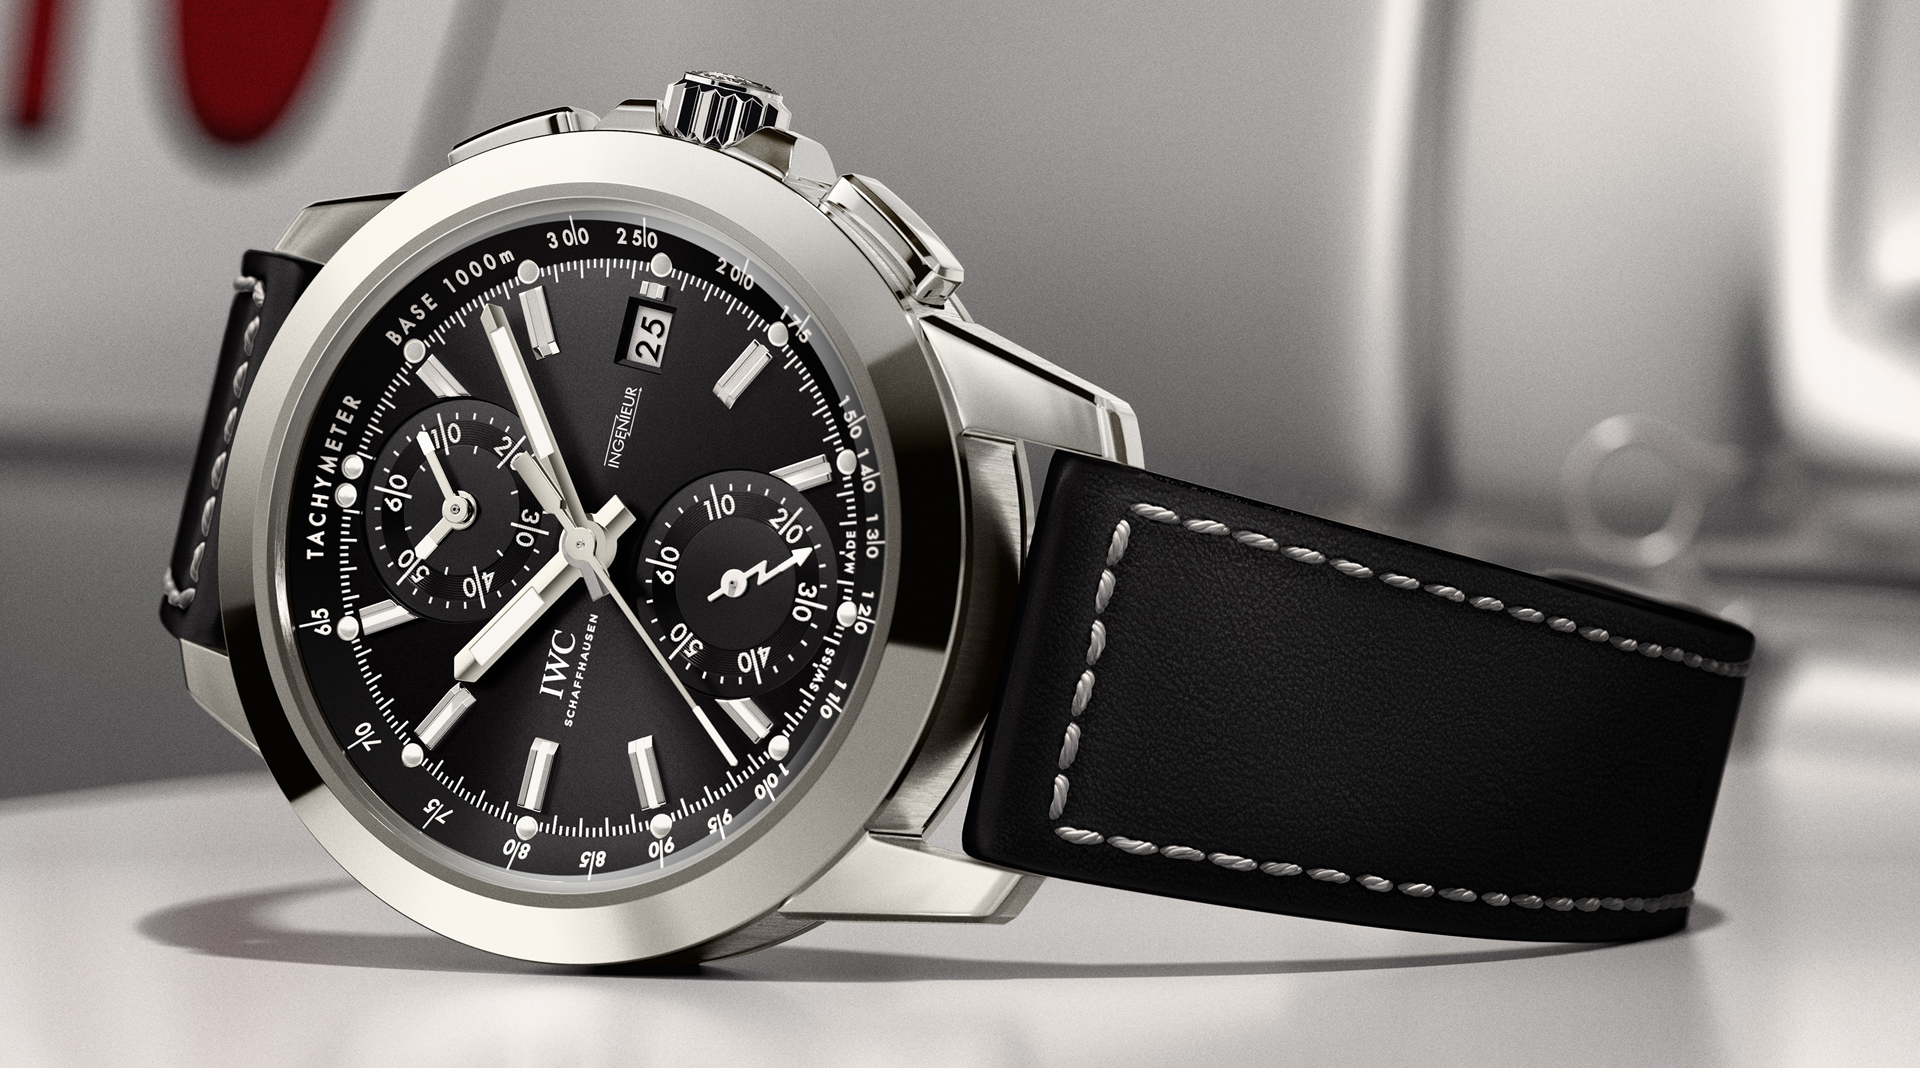 IWC Ingenieur Chronograph Sport side